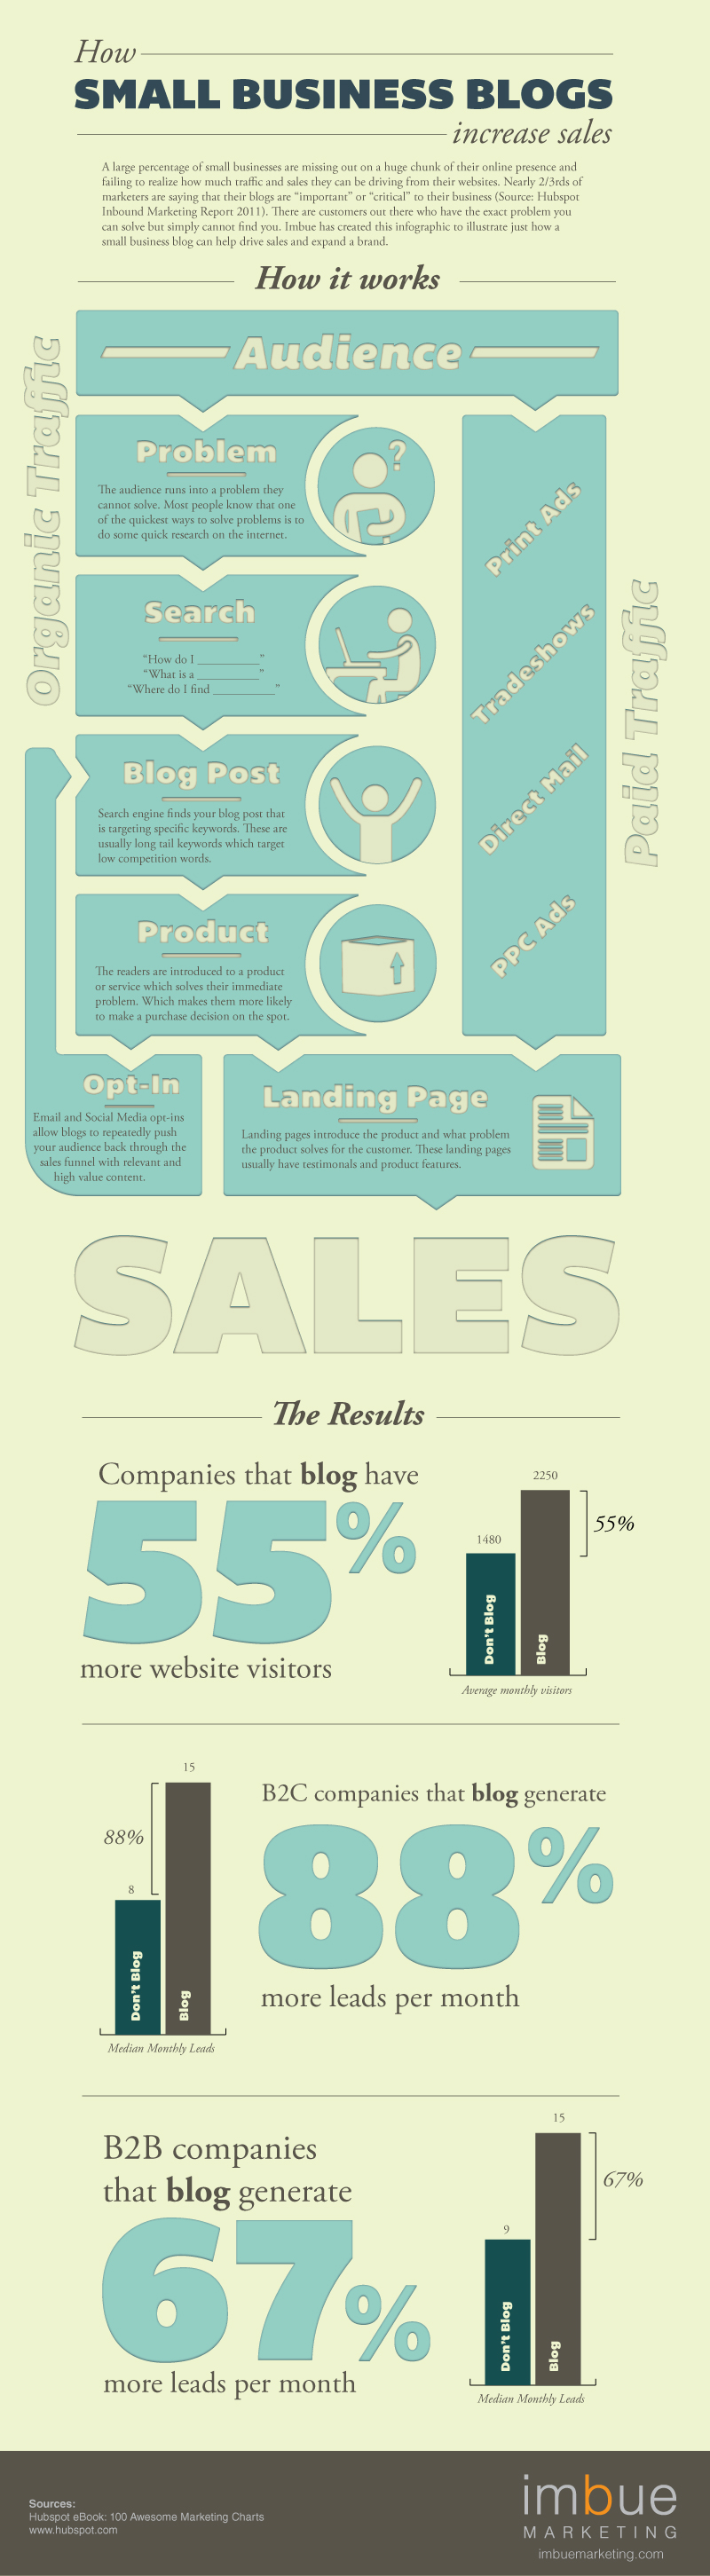 how_small_business_blogs_increase_sales_inforgraphic